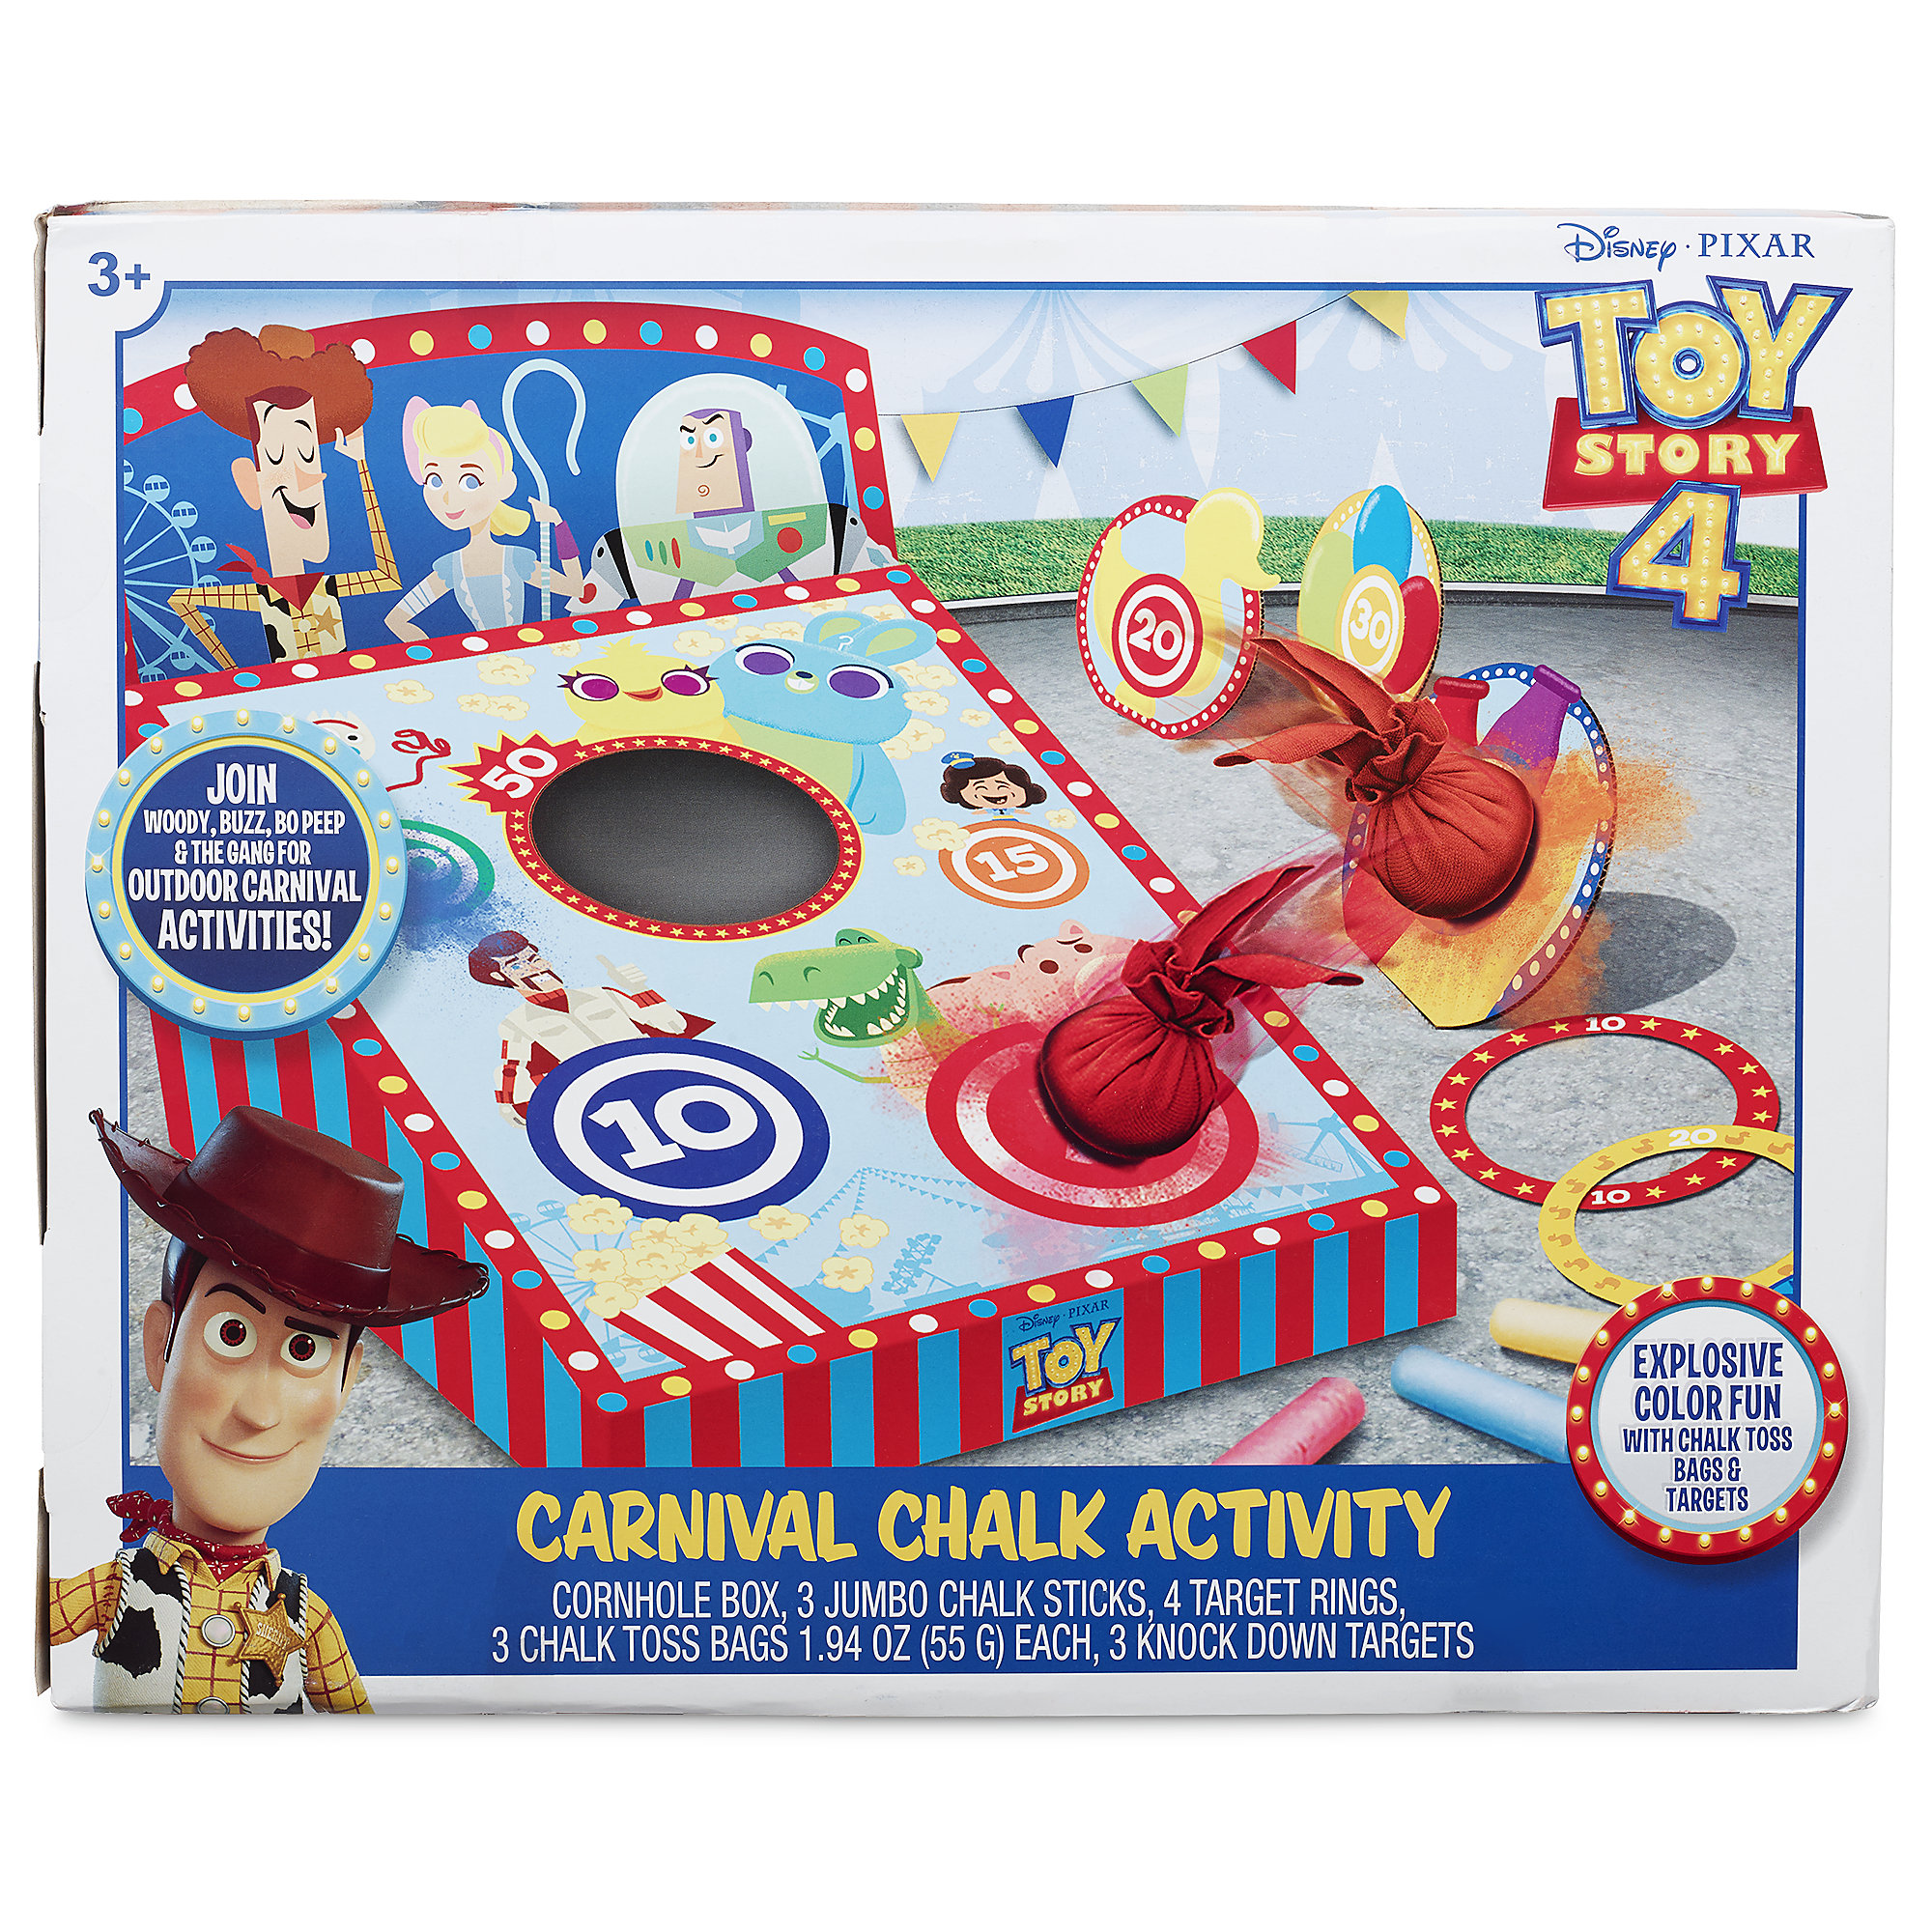 Toy Story 4 Carnival Chalk Activity is now available online